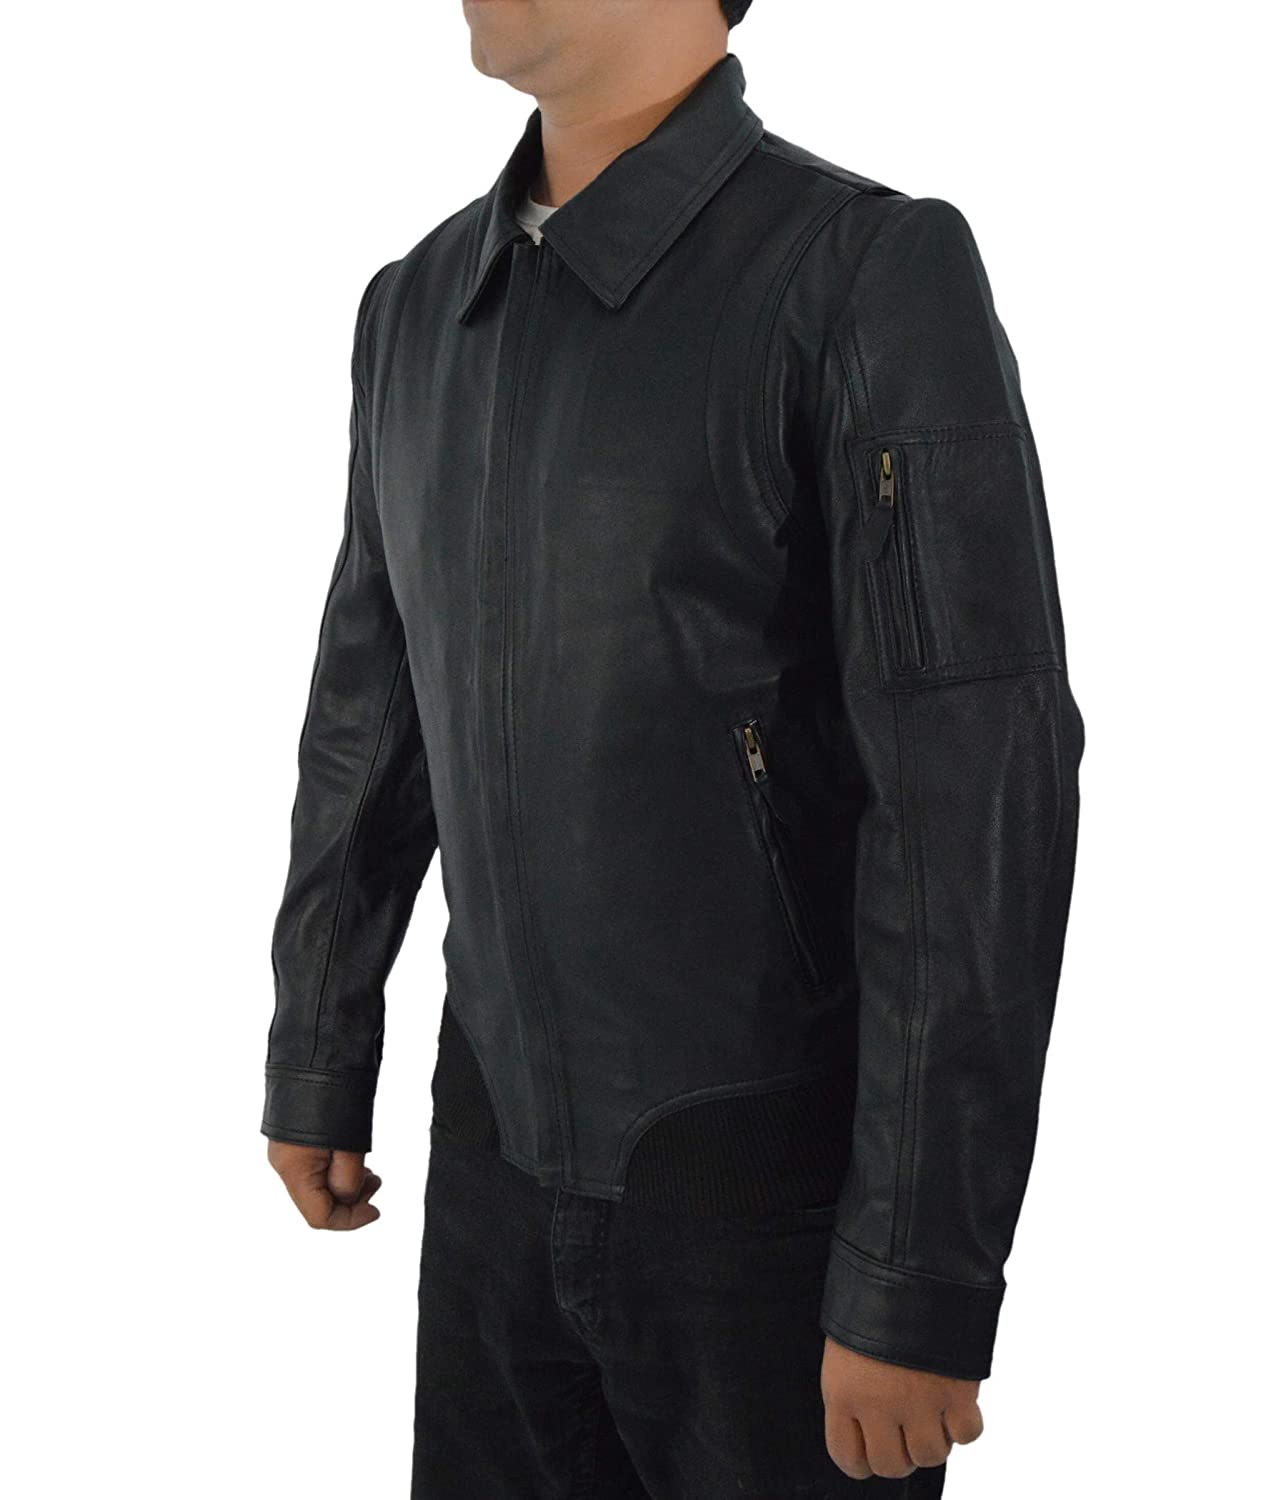 31a0386c9 F&H Men's Synthetic Leather Faster The Rock Dwayne Johnson Bomber ...